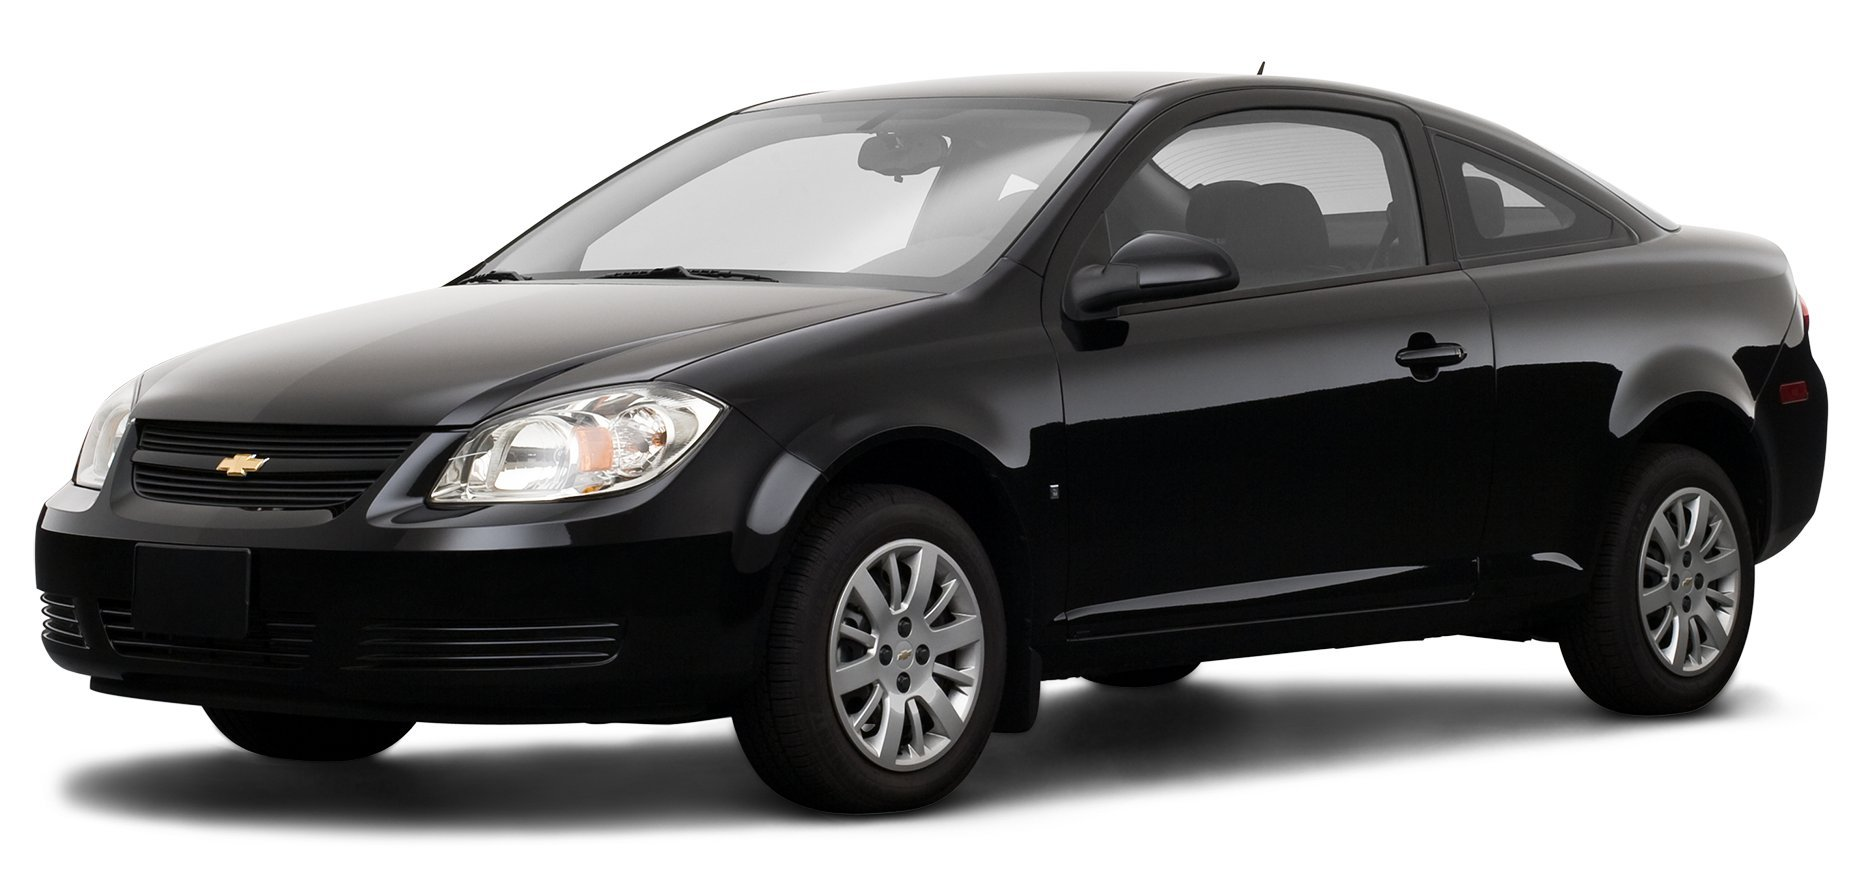 2009 chevrolet cobalt reviews images and. Black Bedroom Furniture Sets. Home Design Ideas